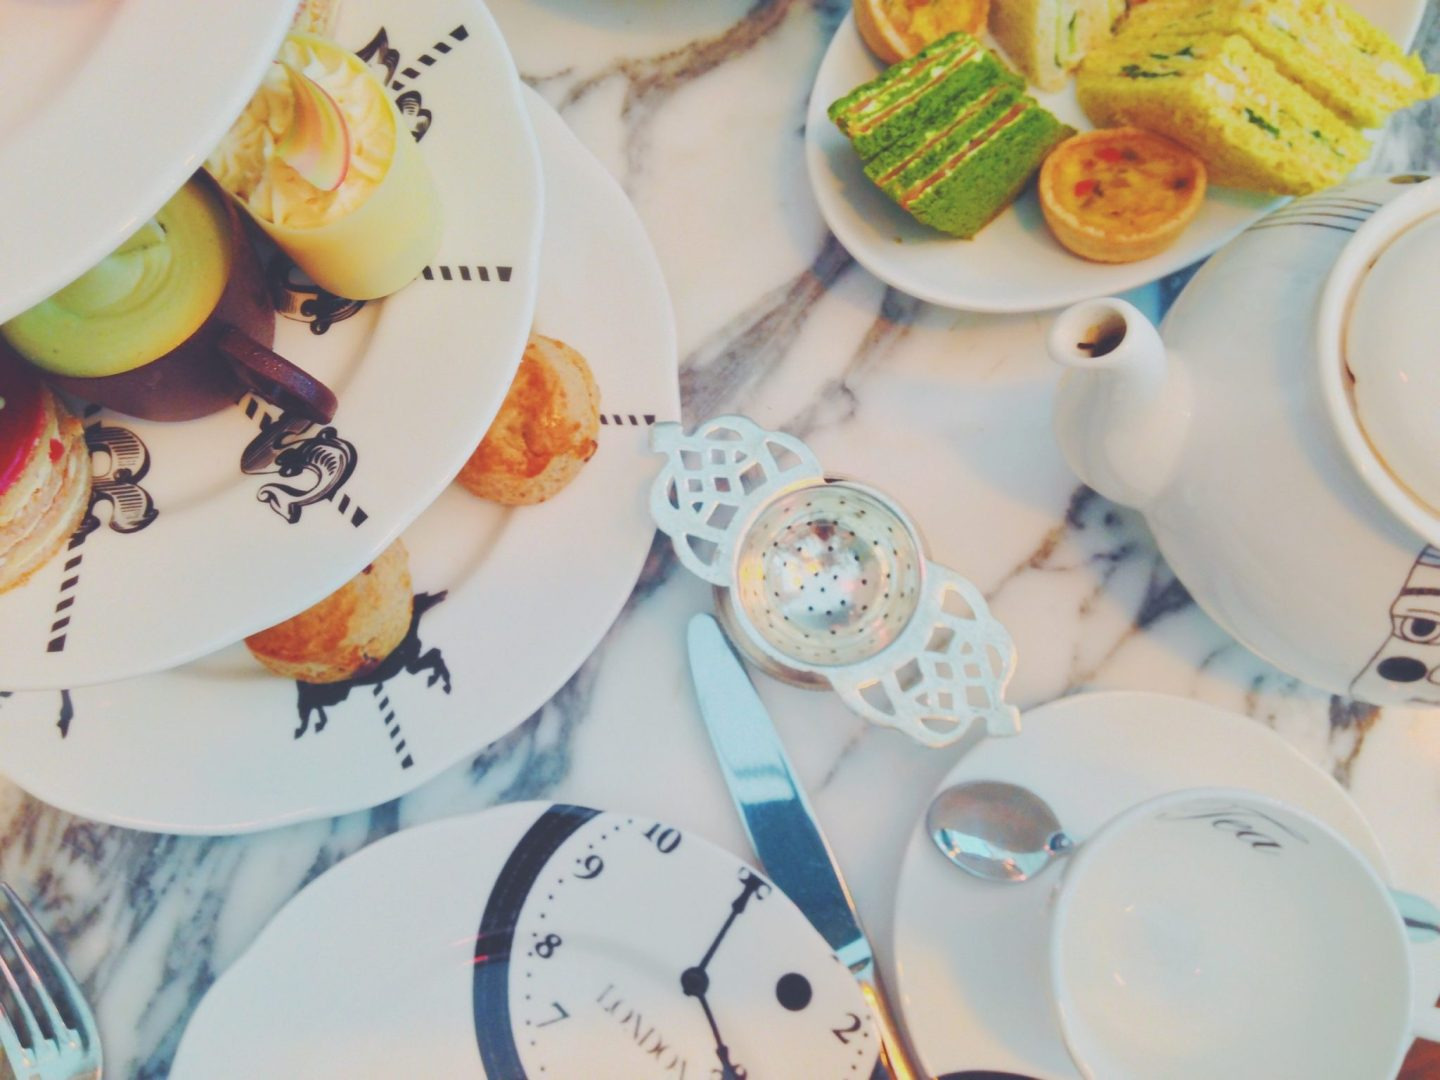 Eating in London: Mad Hatter's Afternoon Tea